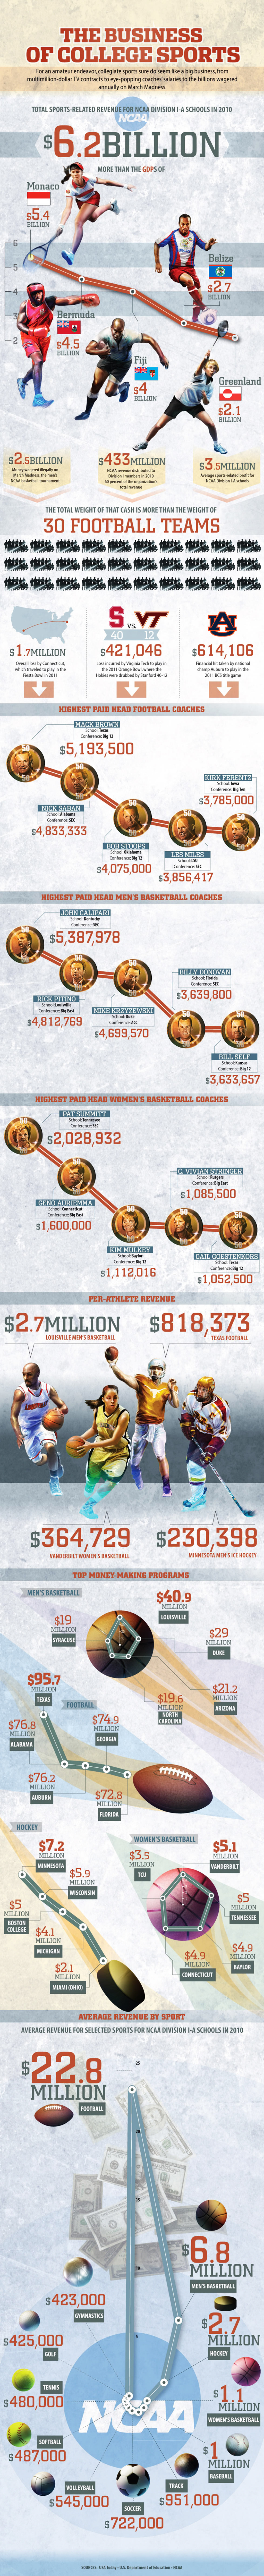 The Business of College Sports Infographic